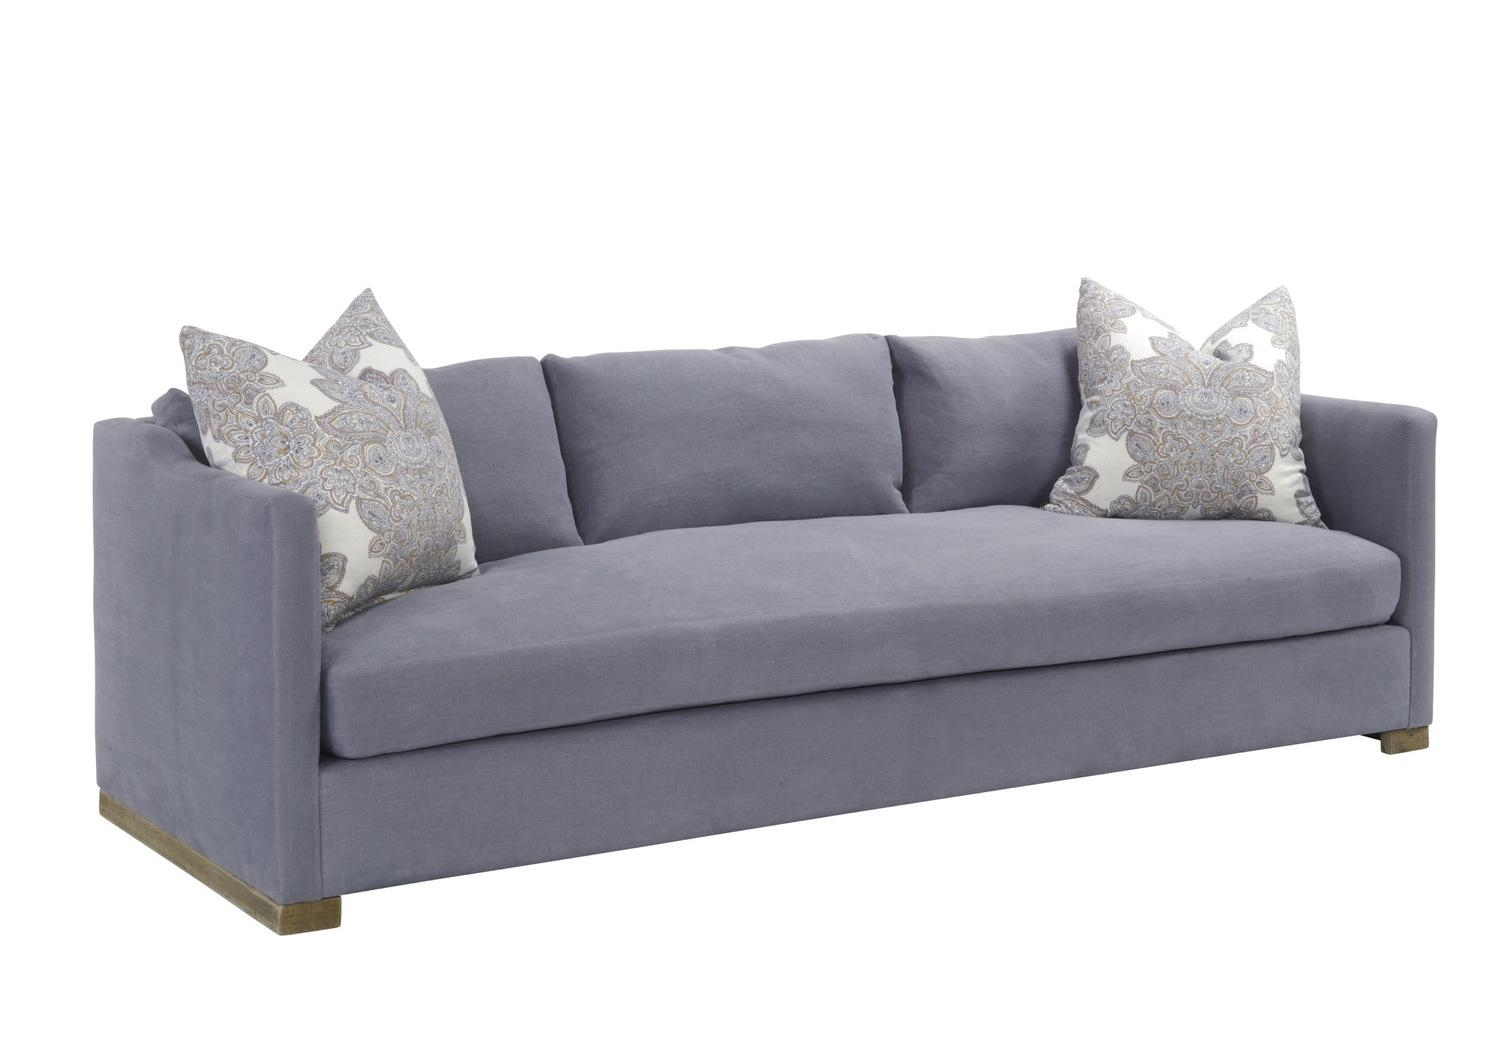 Sofas: Carlisle Furniture Collection | Carlyle Chair | Carlyle Sofa With Regard To Carlyle Sofa Beds (View 8 of 20)